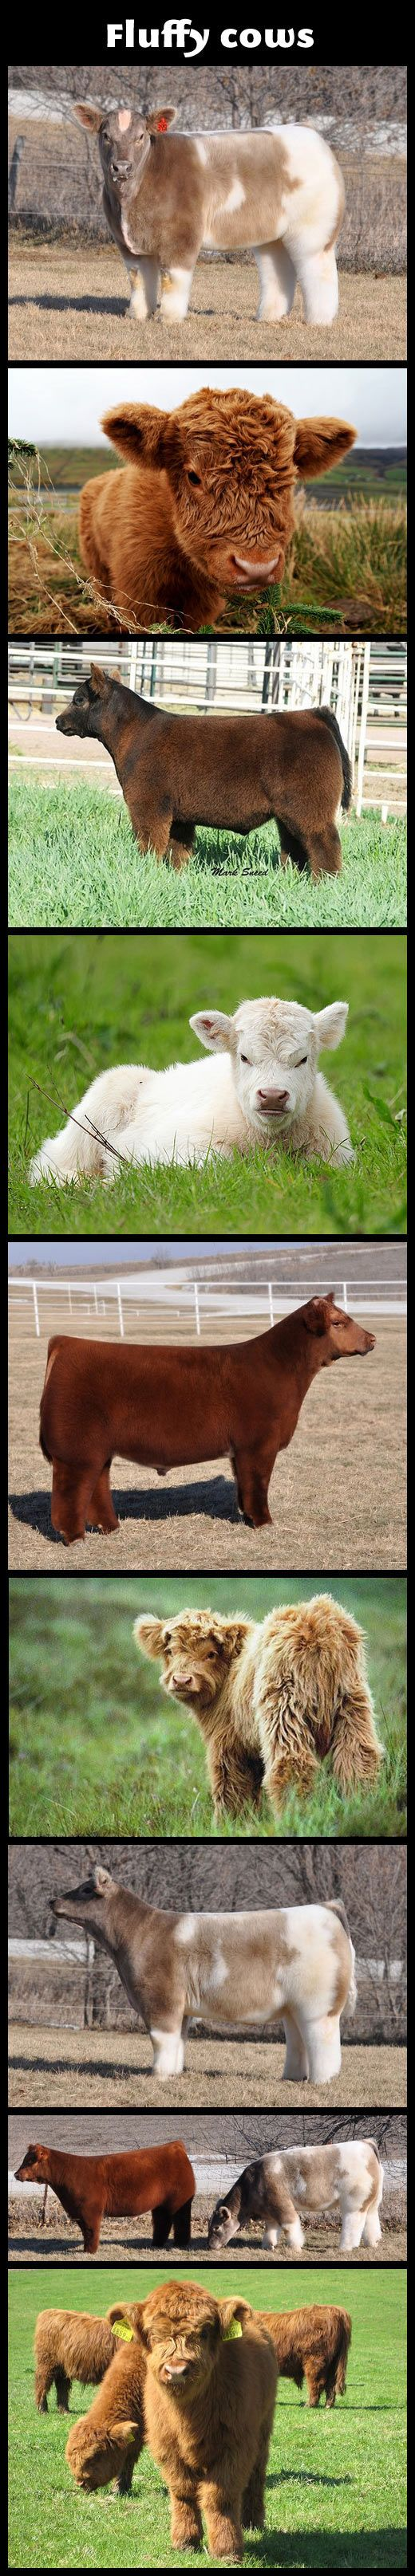 Fluffy Cows…